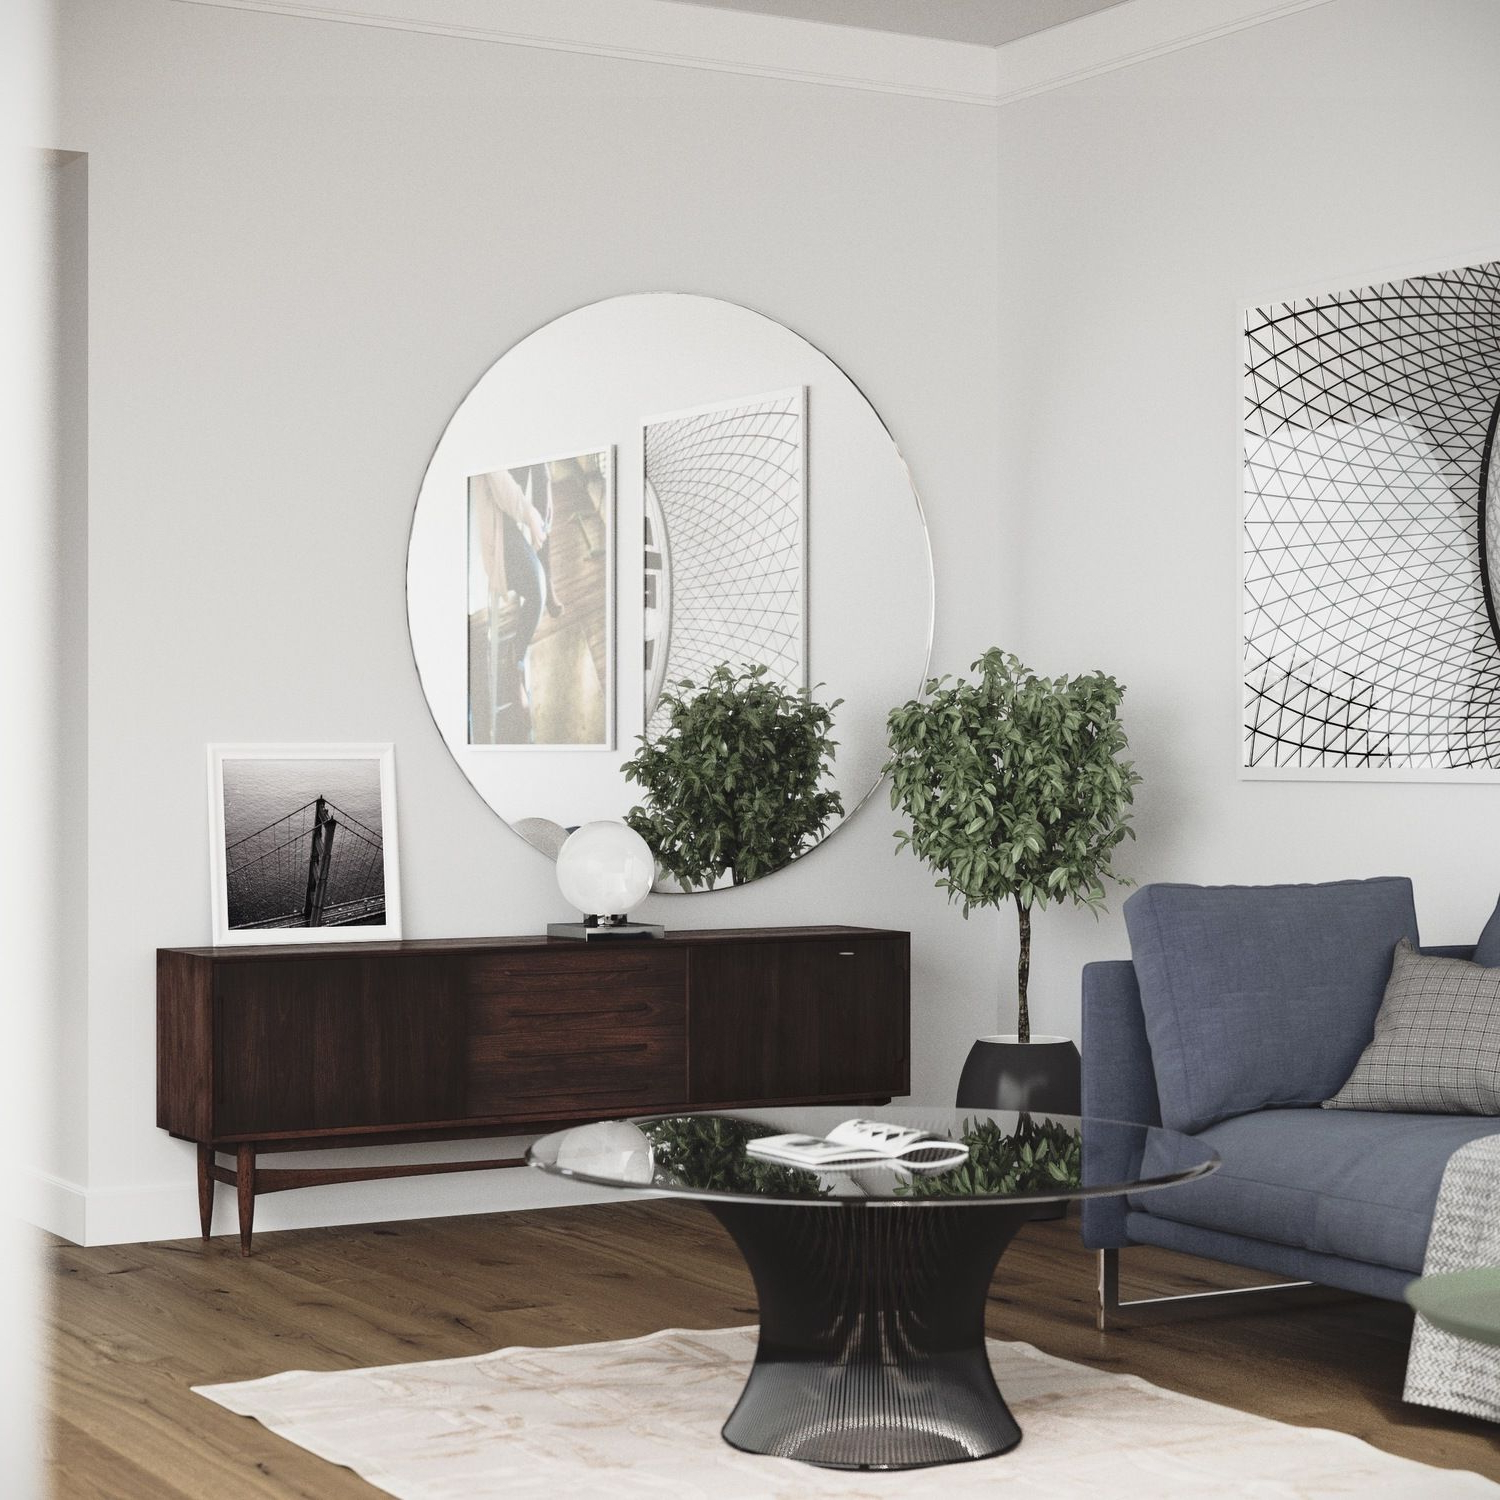 Preferred Find Your Round Wall Mirror – 12 Editor Approved Large Round Mirrors With Regard To Large Circular Wall Mirrors (View 16 of 20)